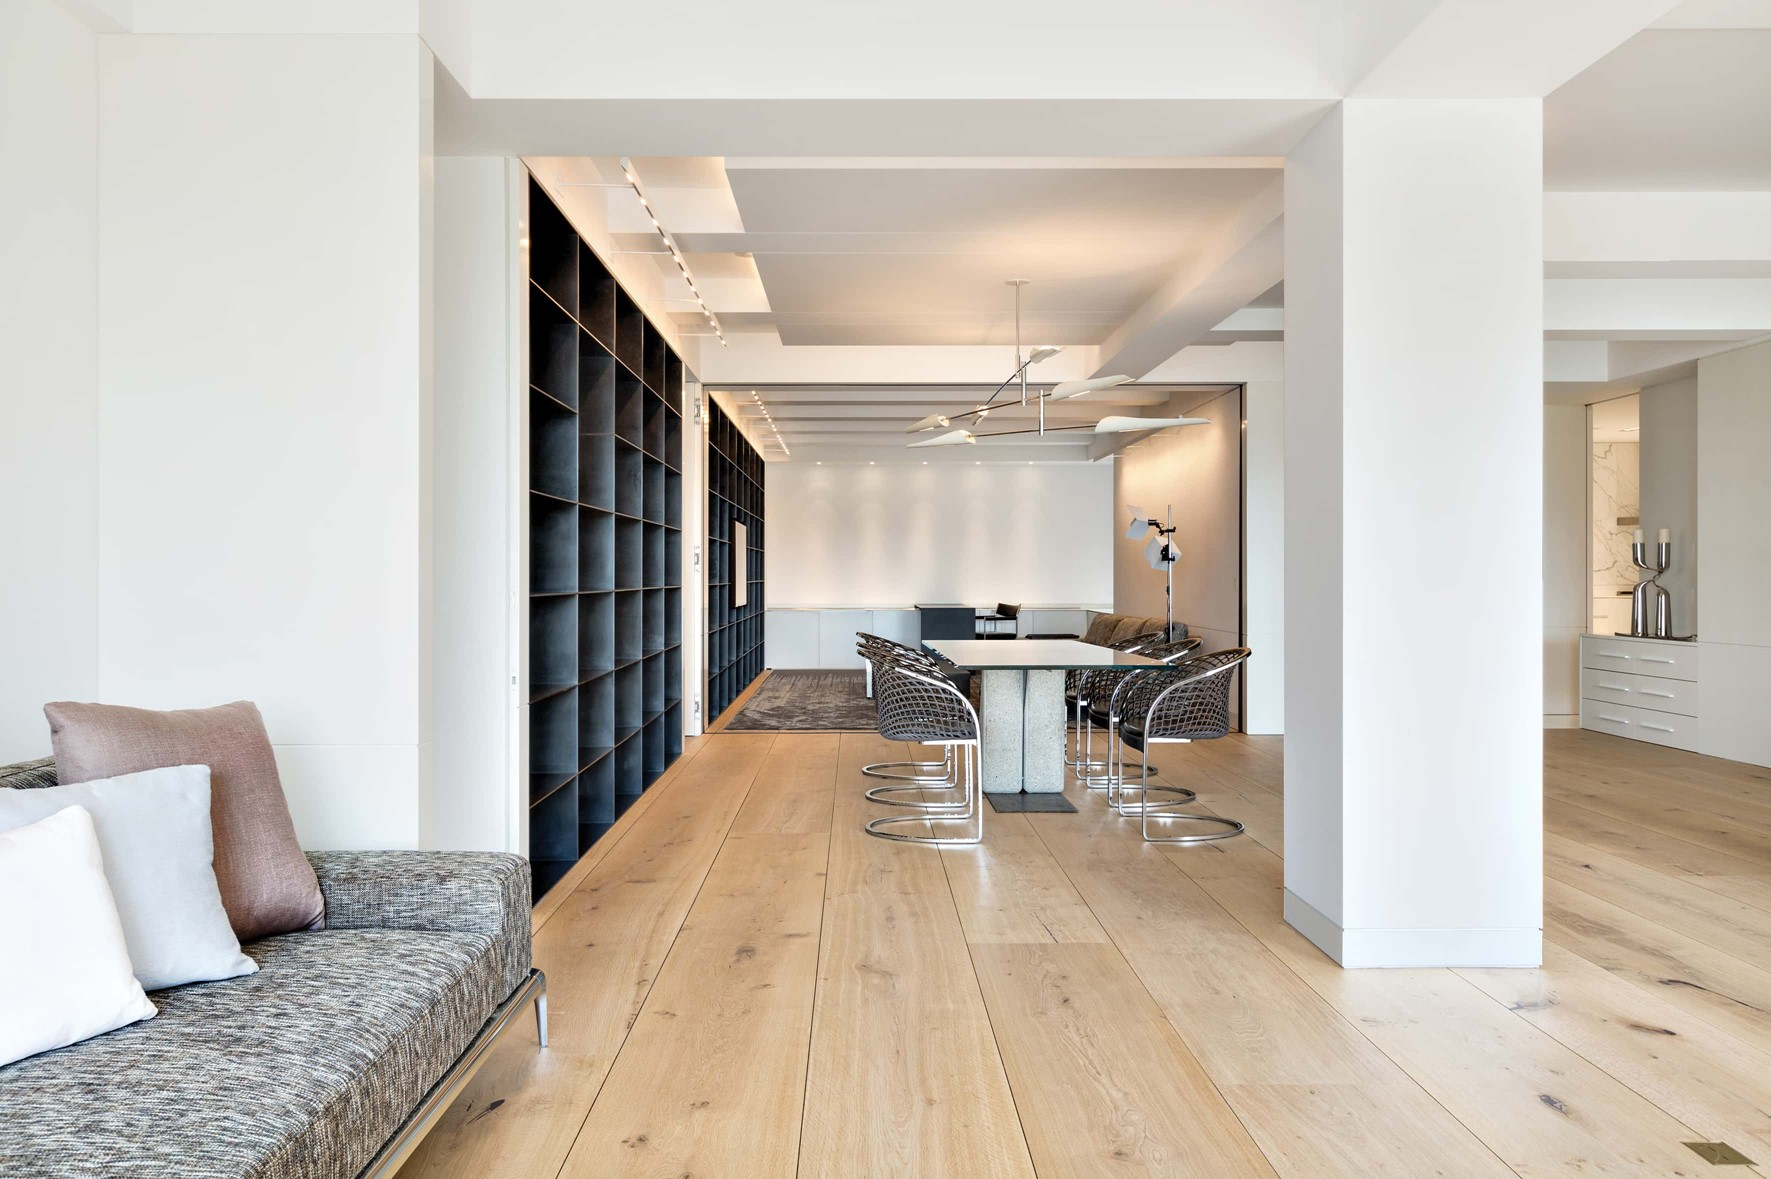 solid-oak-flooring_natural-oil_central-park_living-room_dinesen_02.jpg